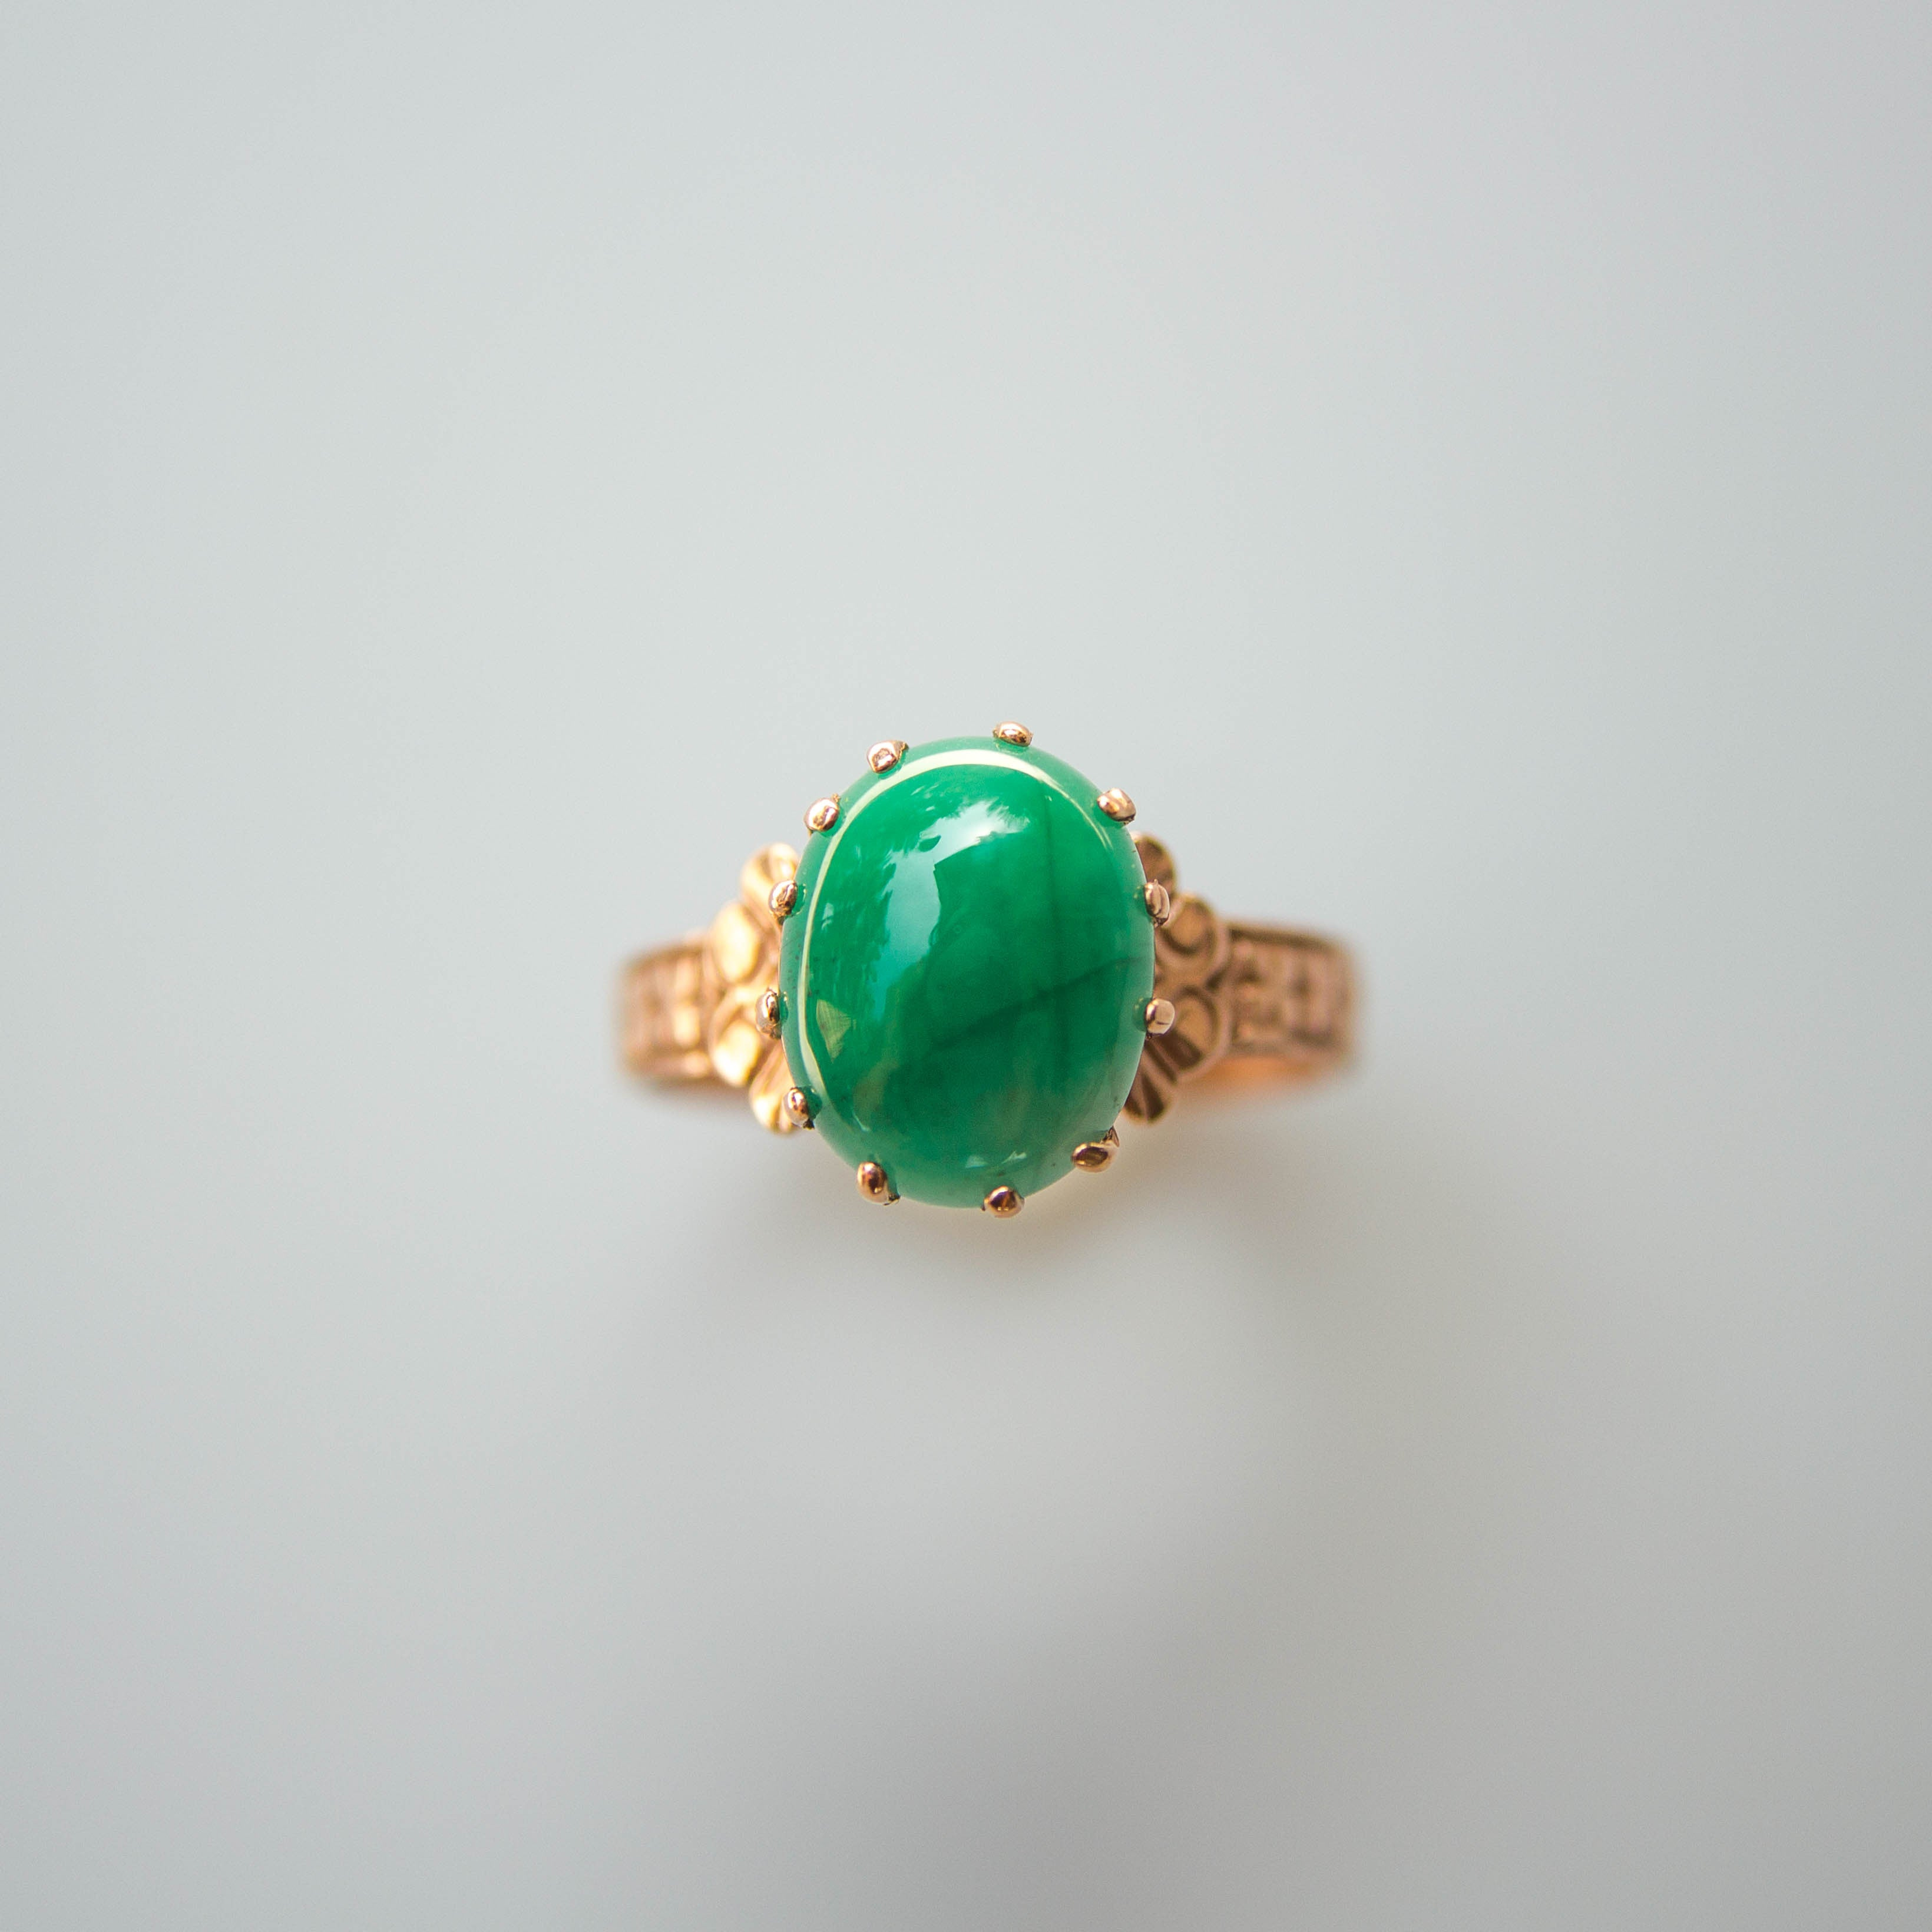 VICTORIAN EMERALD SOLITAIRE RING